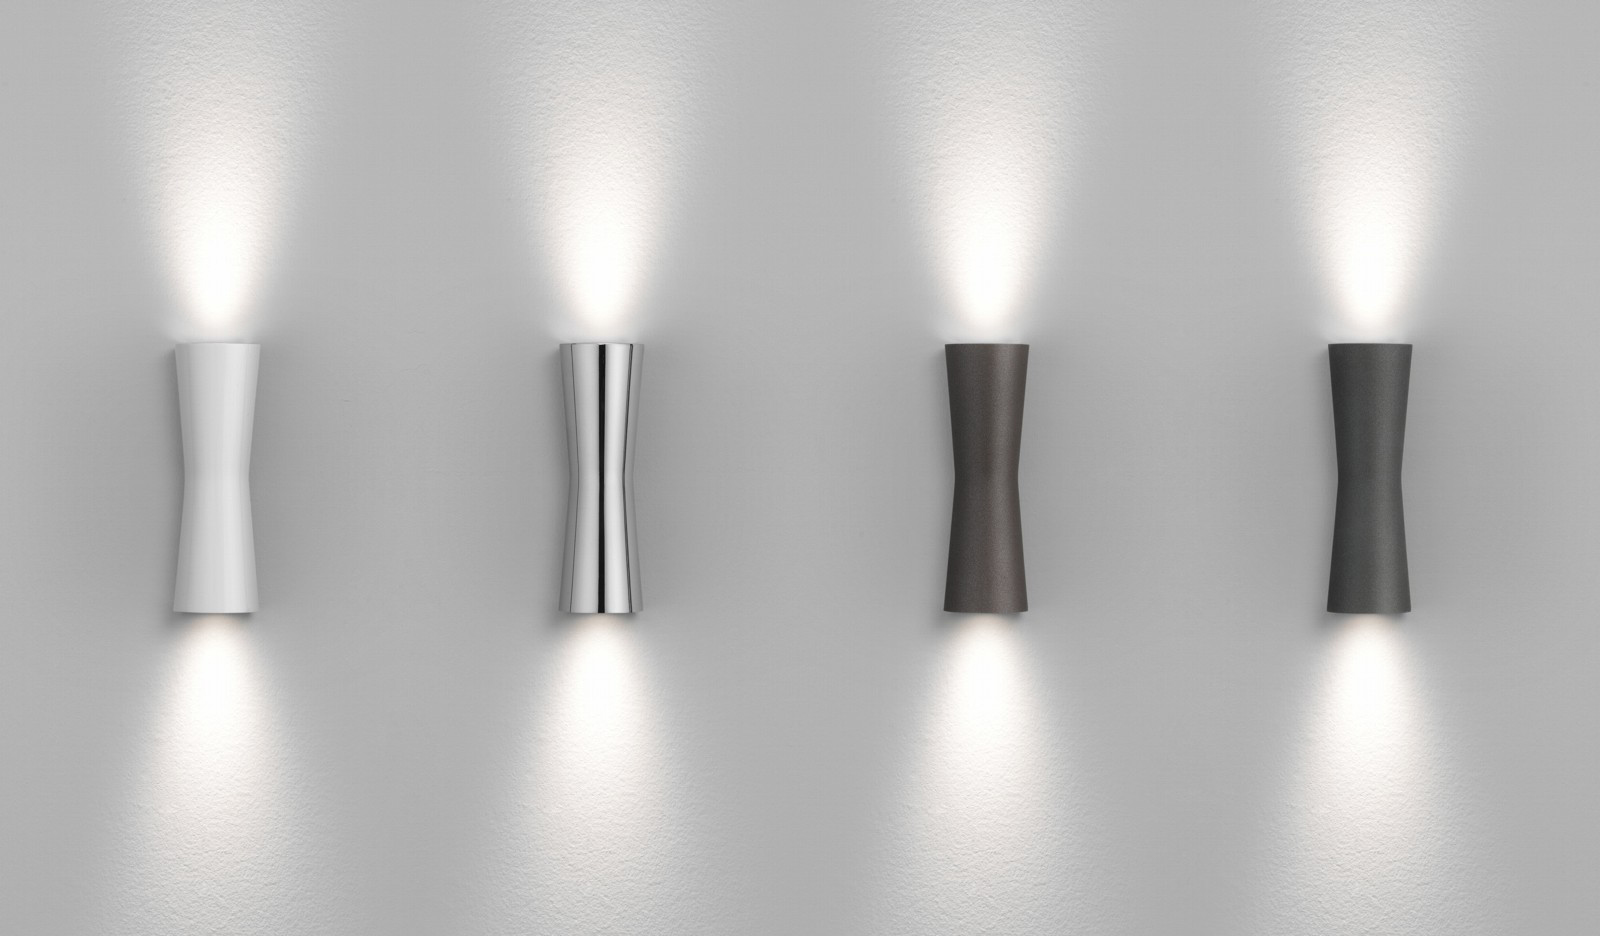 Clessidra modern up down contemporary wall spot light for for Modern exterior lighting fixtures